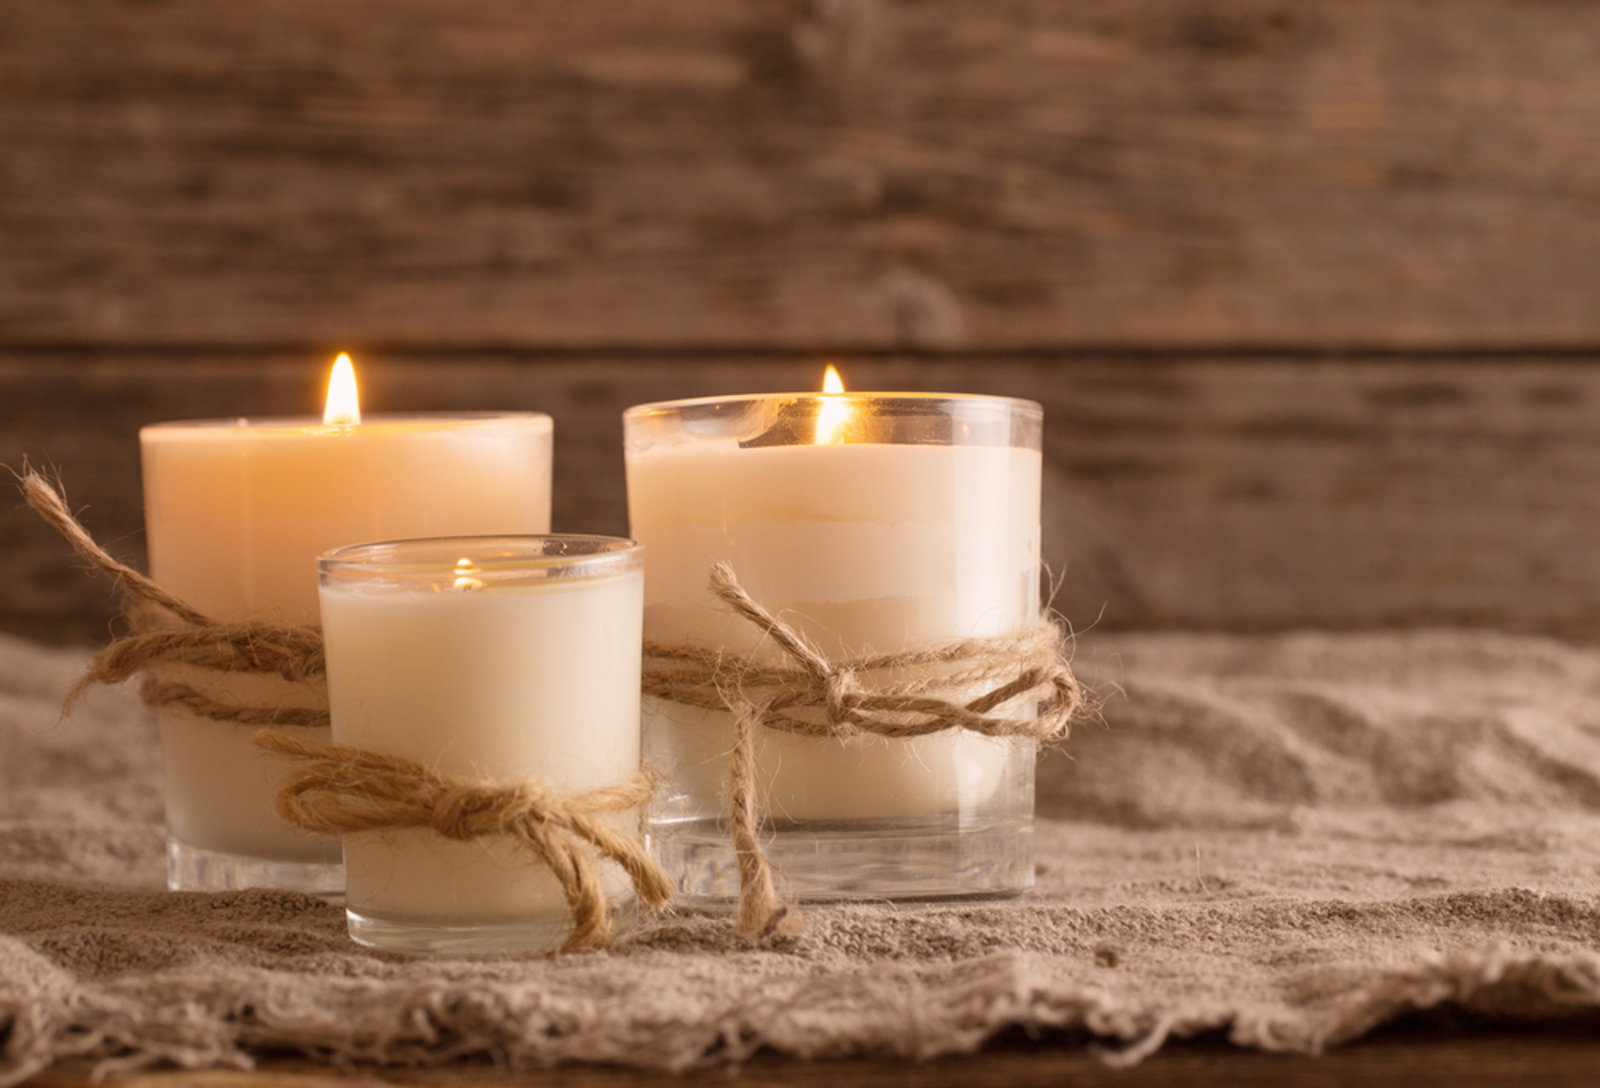 Why You Need to Ditch Scented Candles and Find Non-Toxic Alternatives